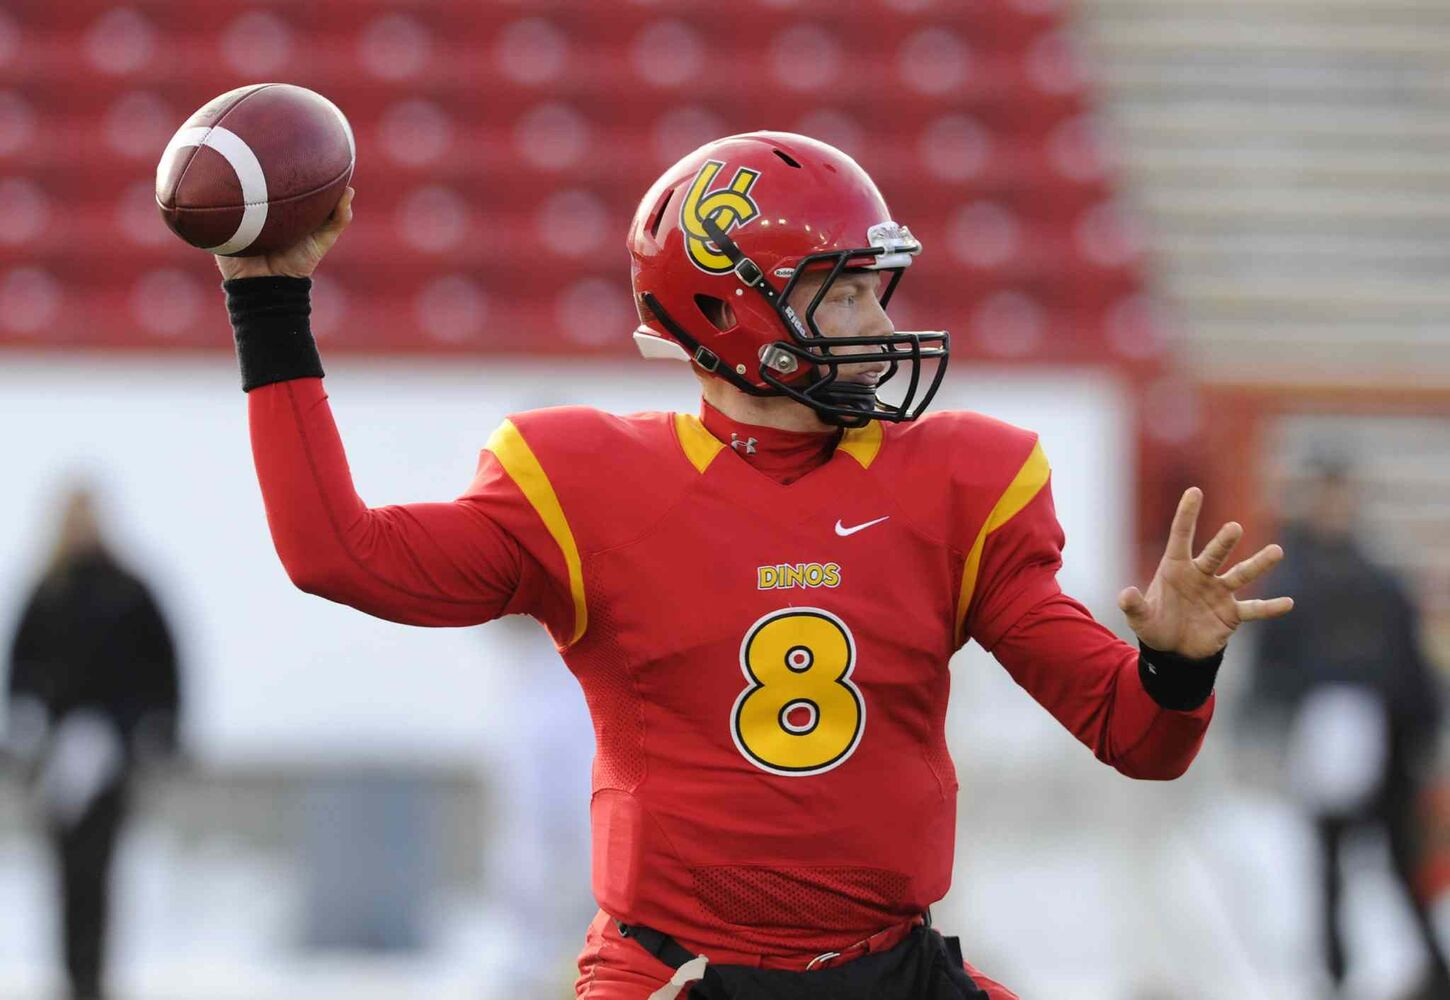 Calgary Dinos quarterback Andrew Buckley gets ready to throw down-field during the first half.